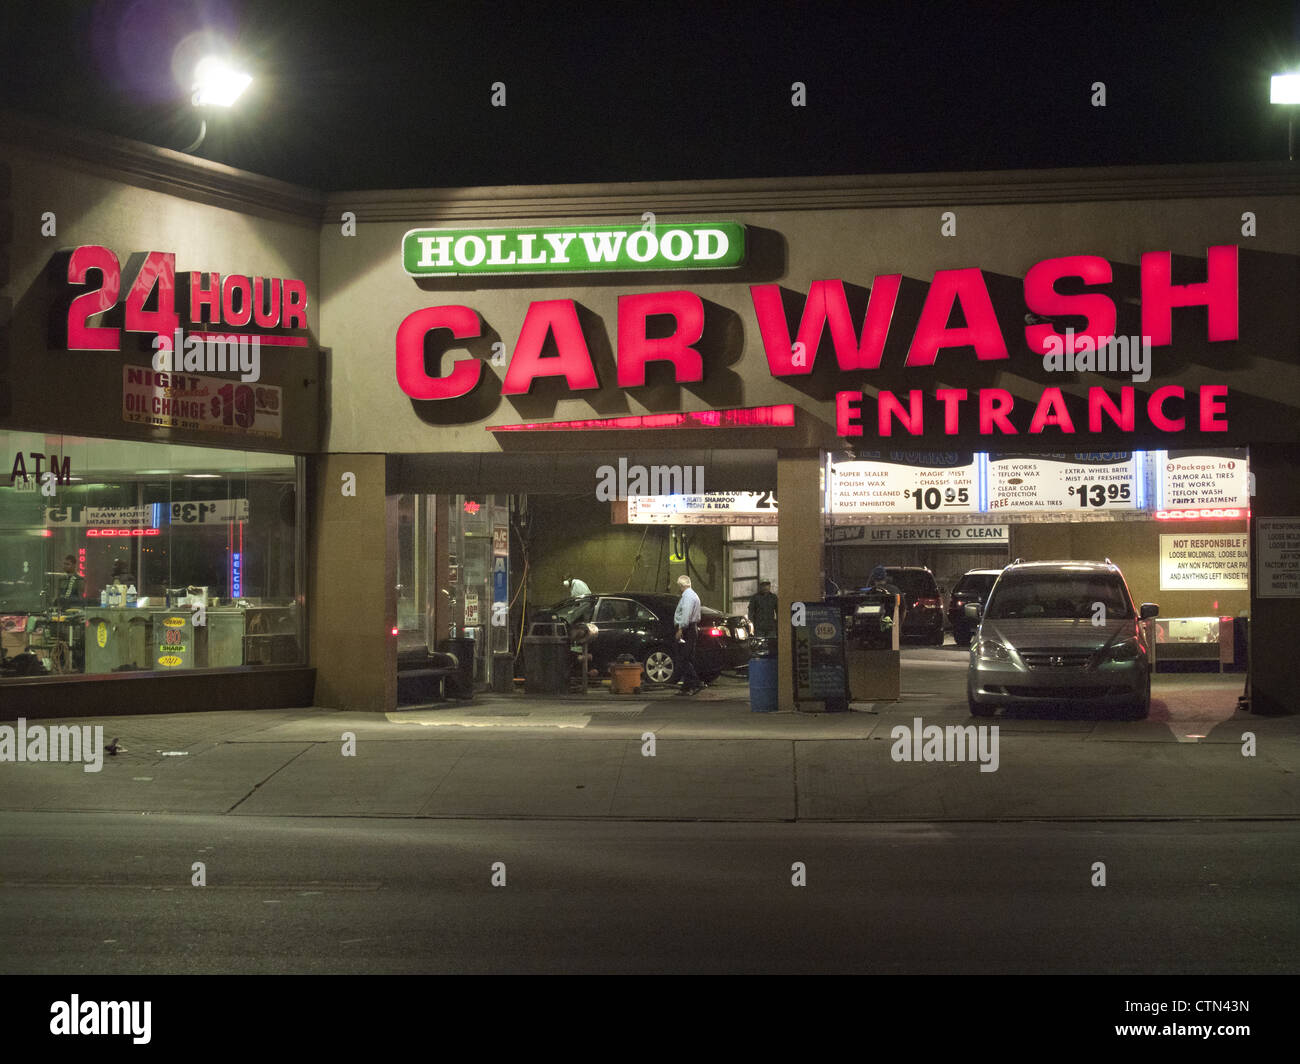 24 hour Hollywood Car Wash at Church and Coney Island Avenues in Brooklyn, NY. - Stock Image